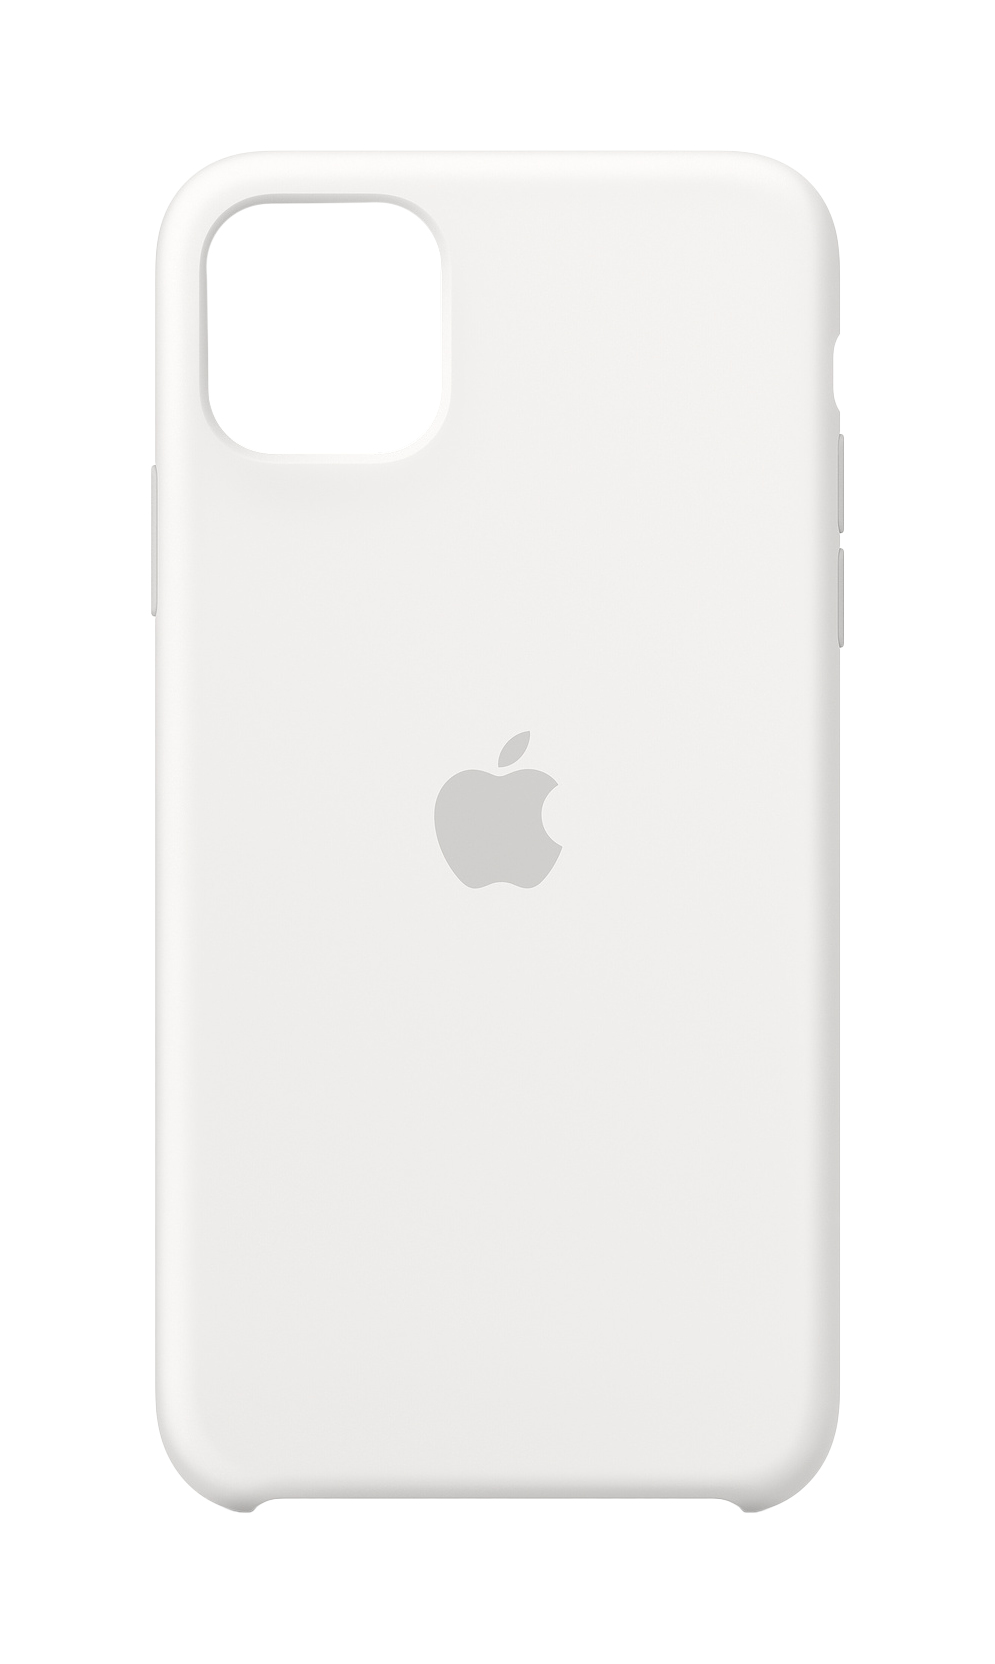 "Apple MWYX2ZM/A mobile phone case 16.5 cm (6.5"") Cover White"